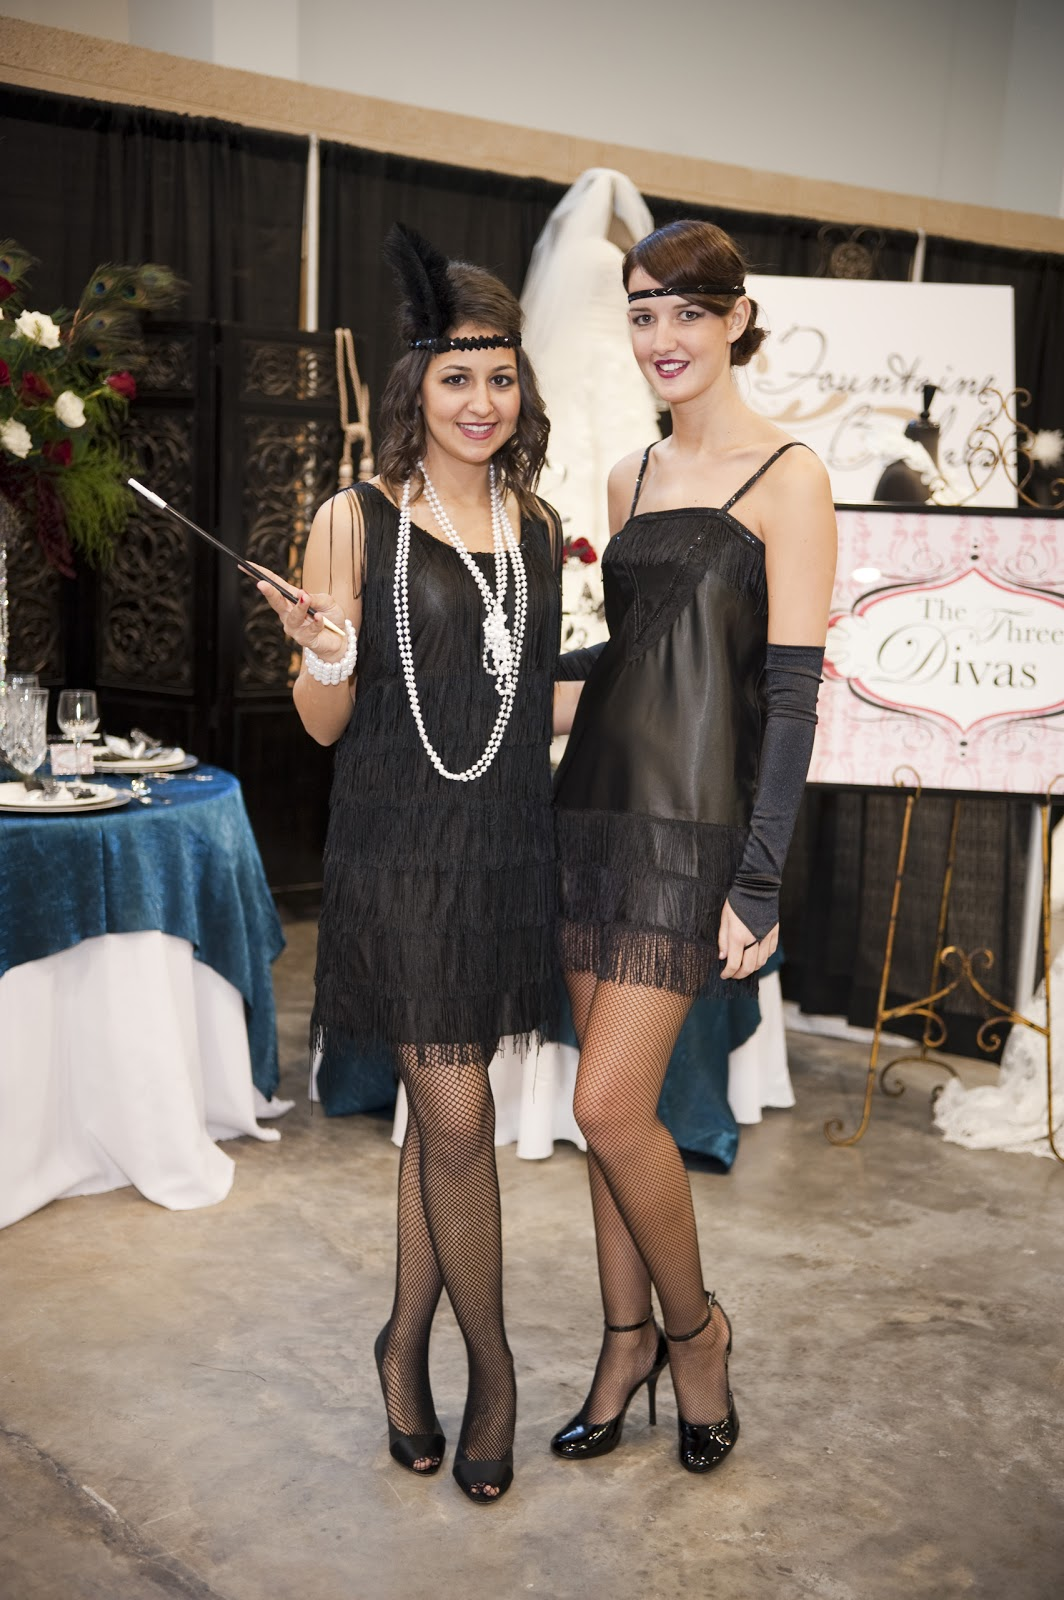 1920s themed wedding shower